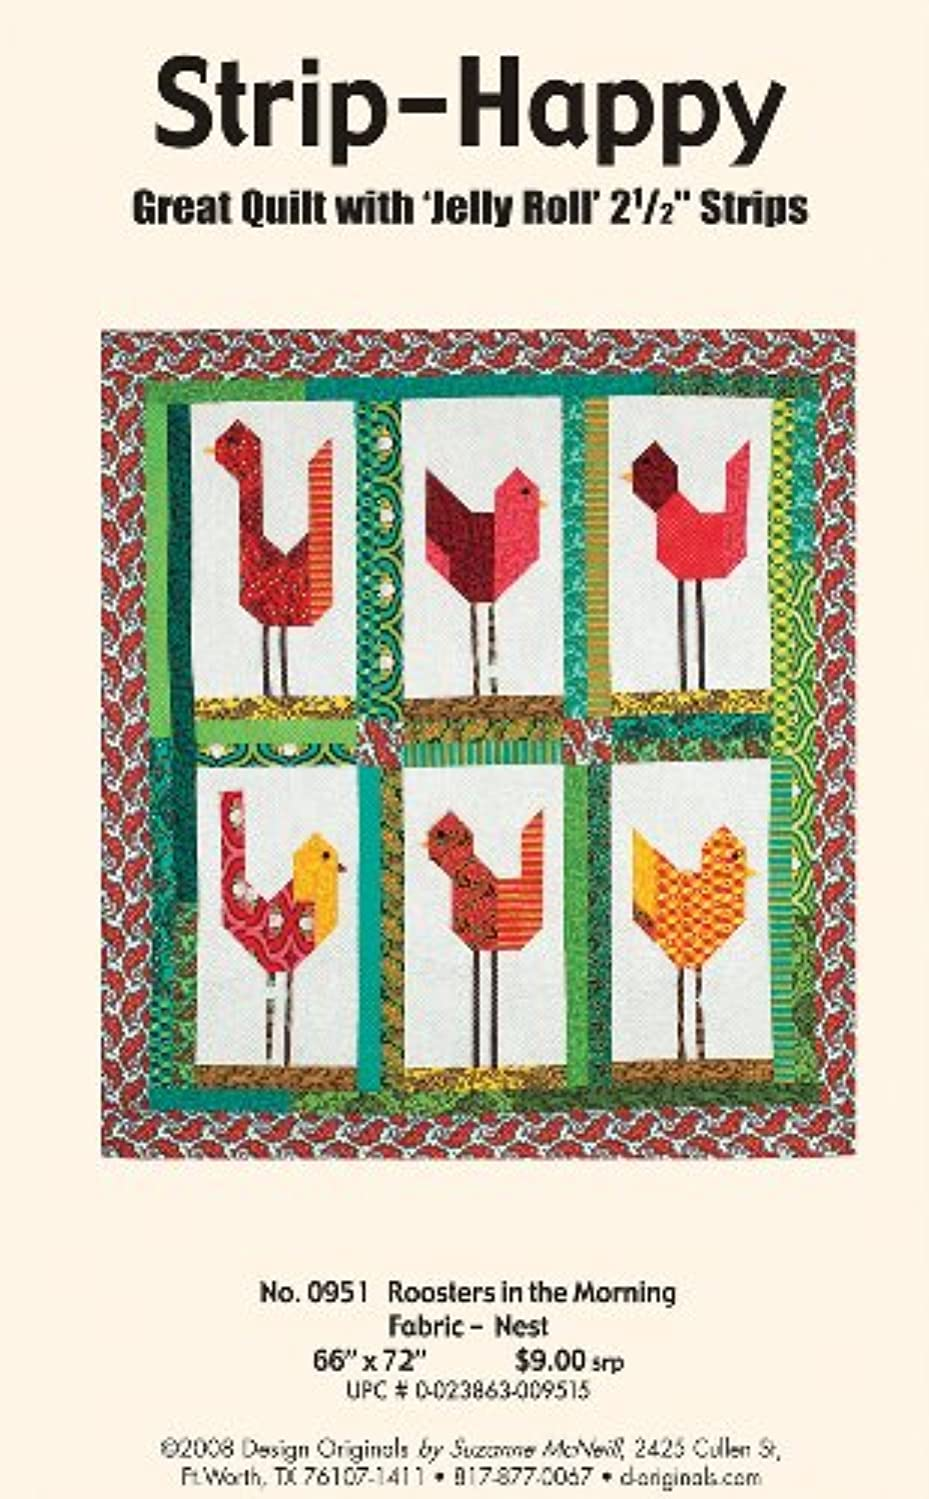 Design Originals DO951 Roosters in The Morning Quilting Template